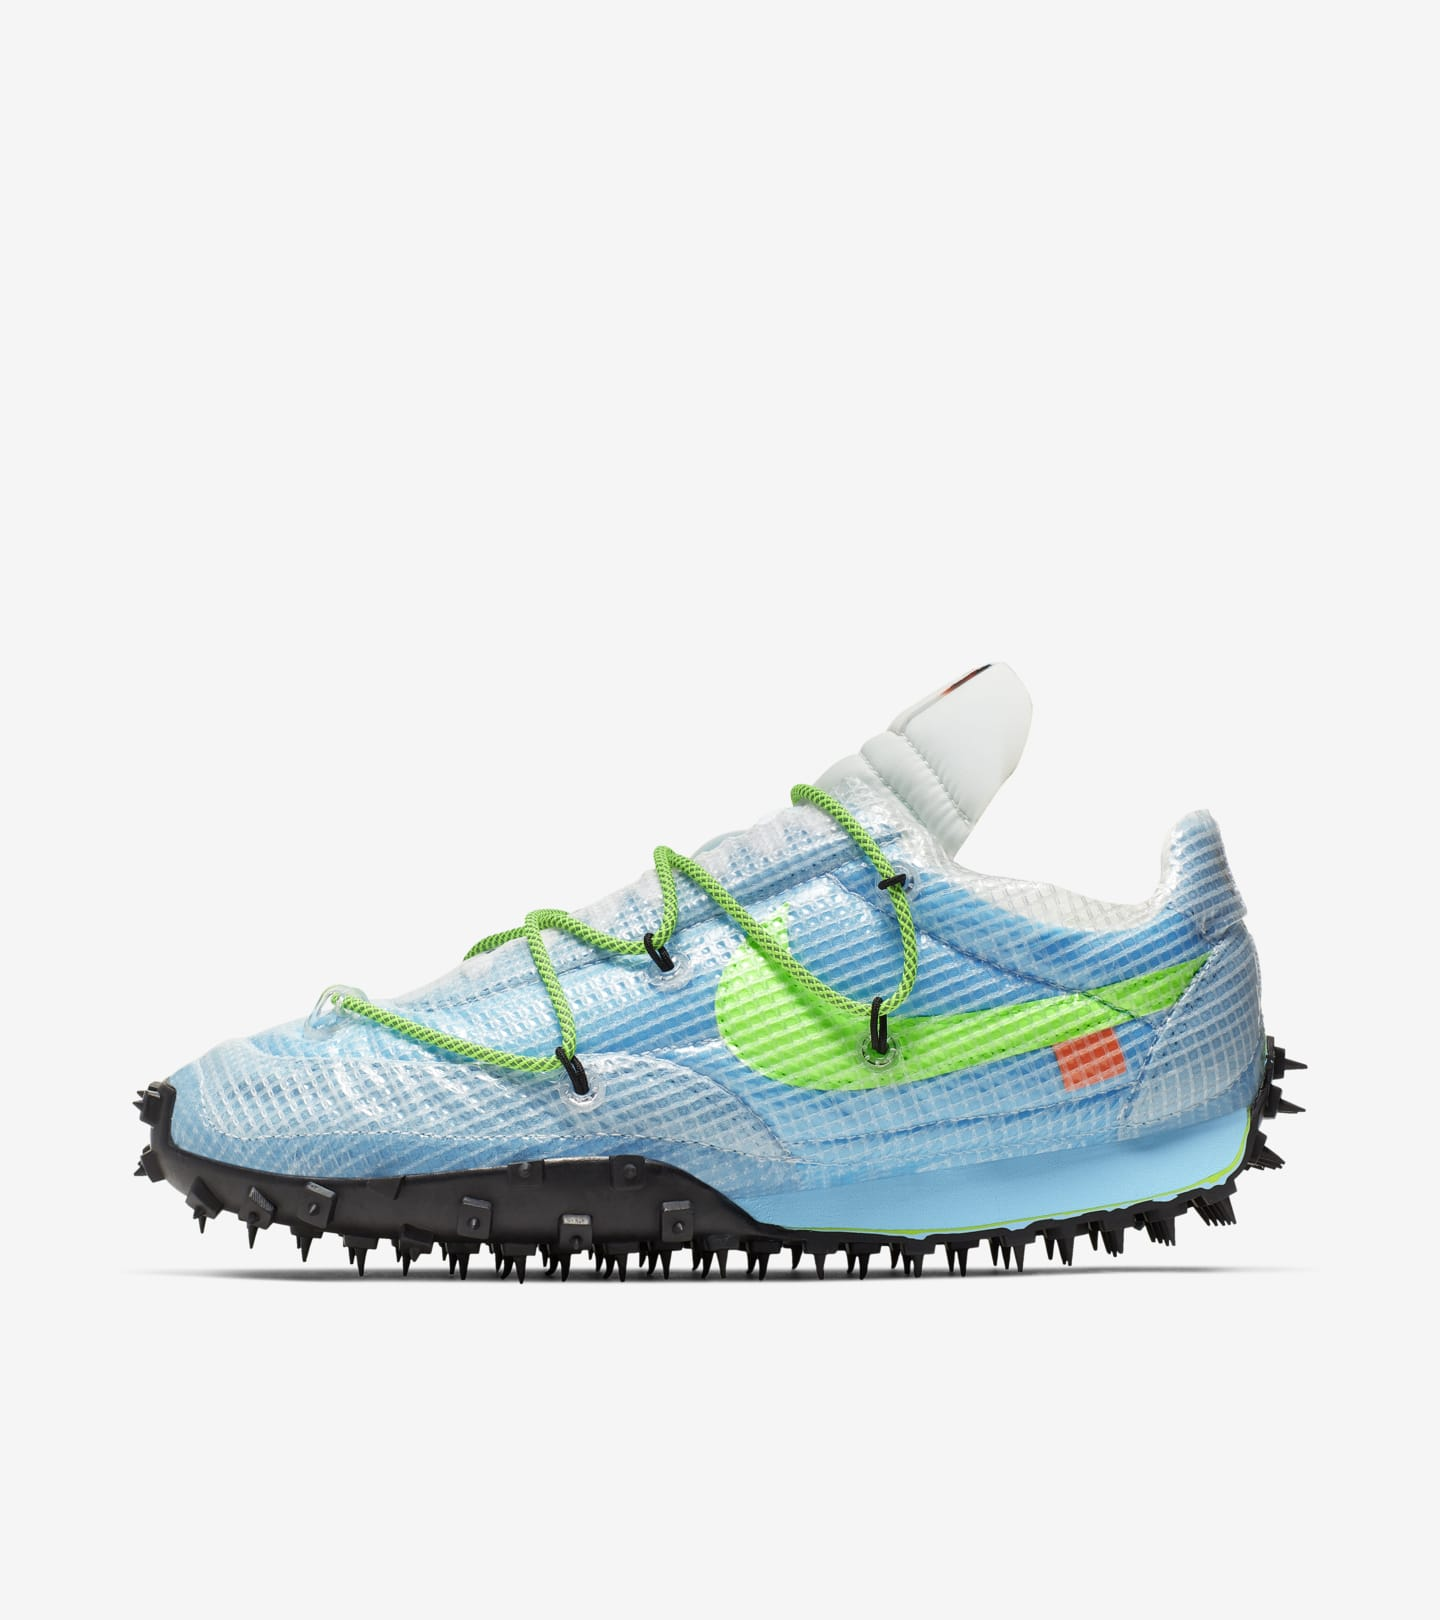 Nike x Off White Waffle Racer 'Athlete in Progress' voor